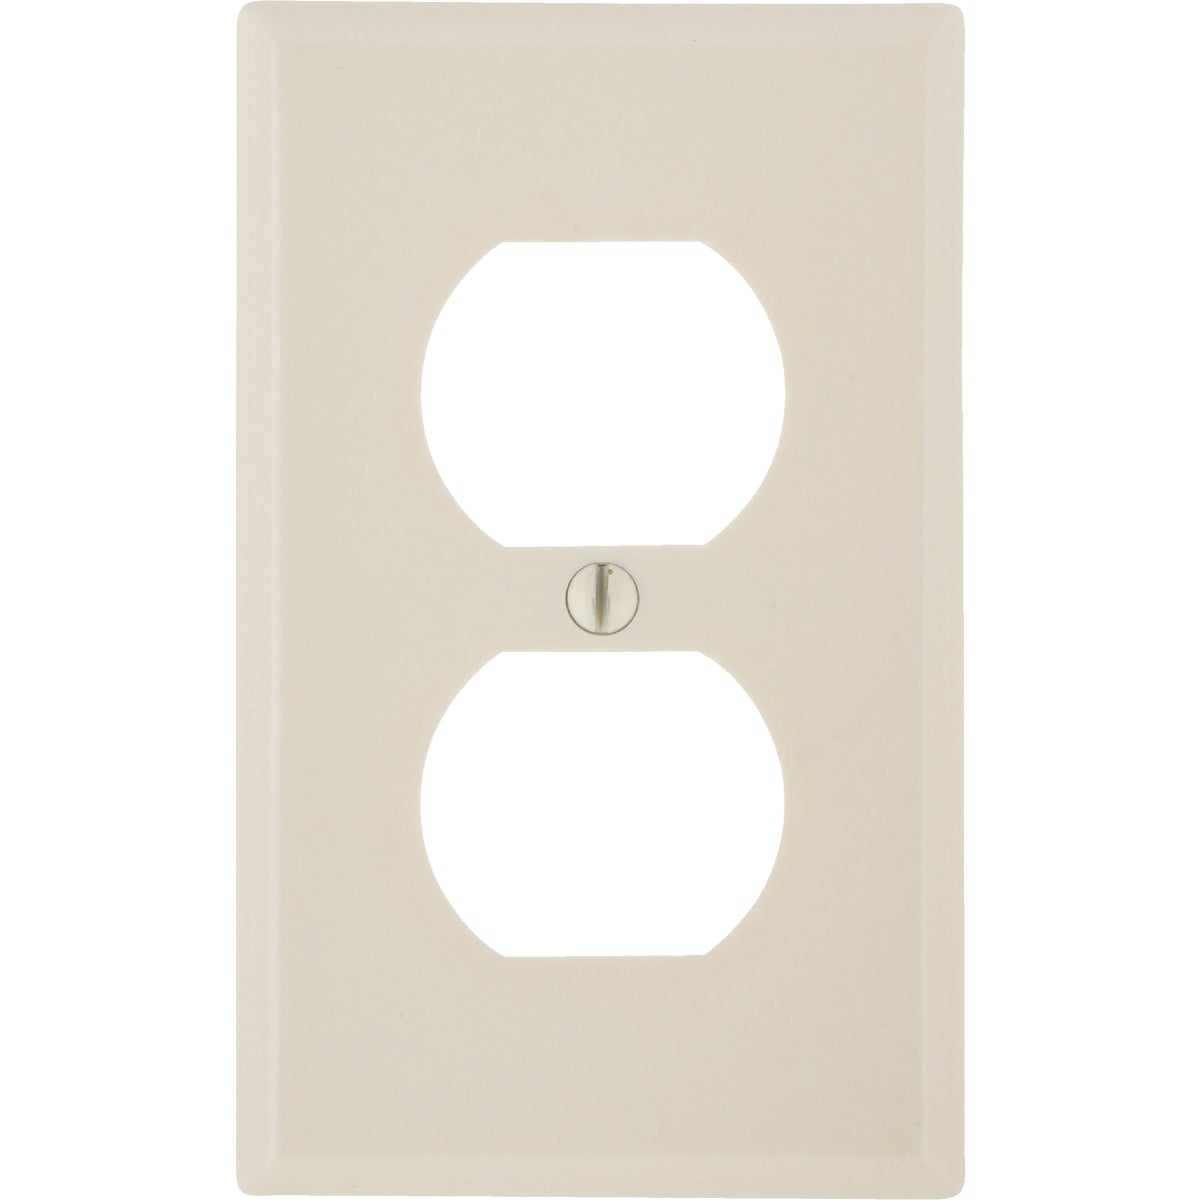 LT ALM OUTLET WALLPLATE - 010-78003 by Leviton Mfg Co